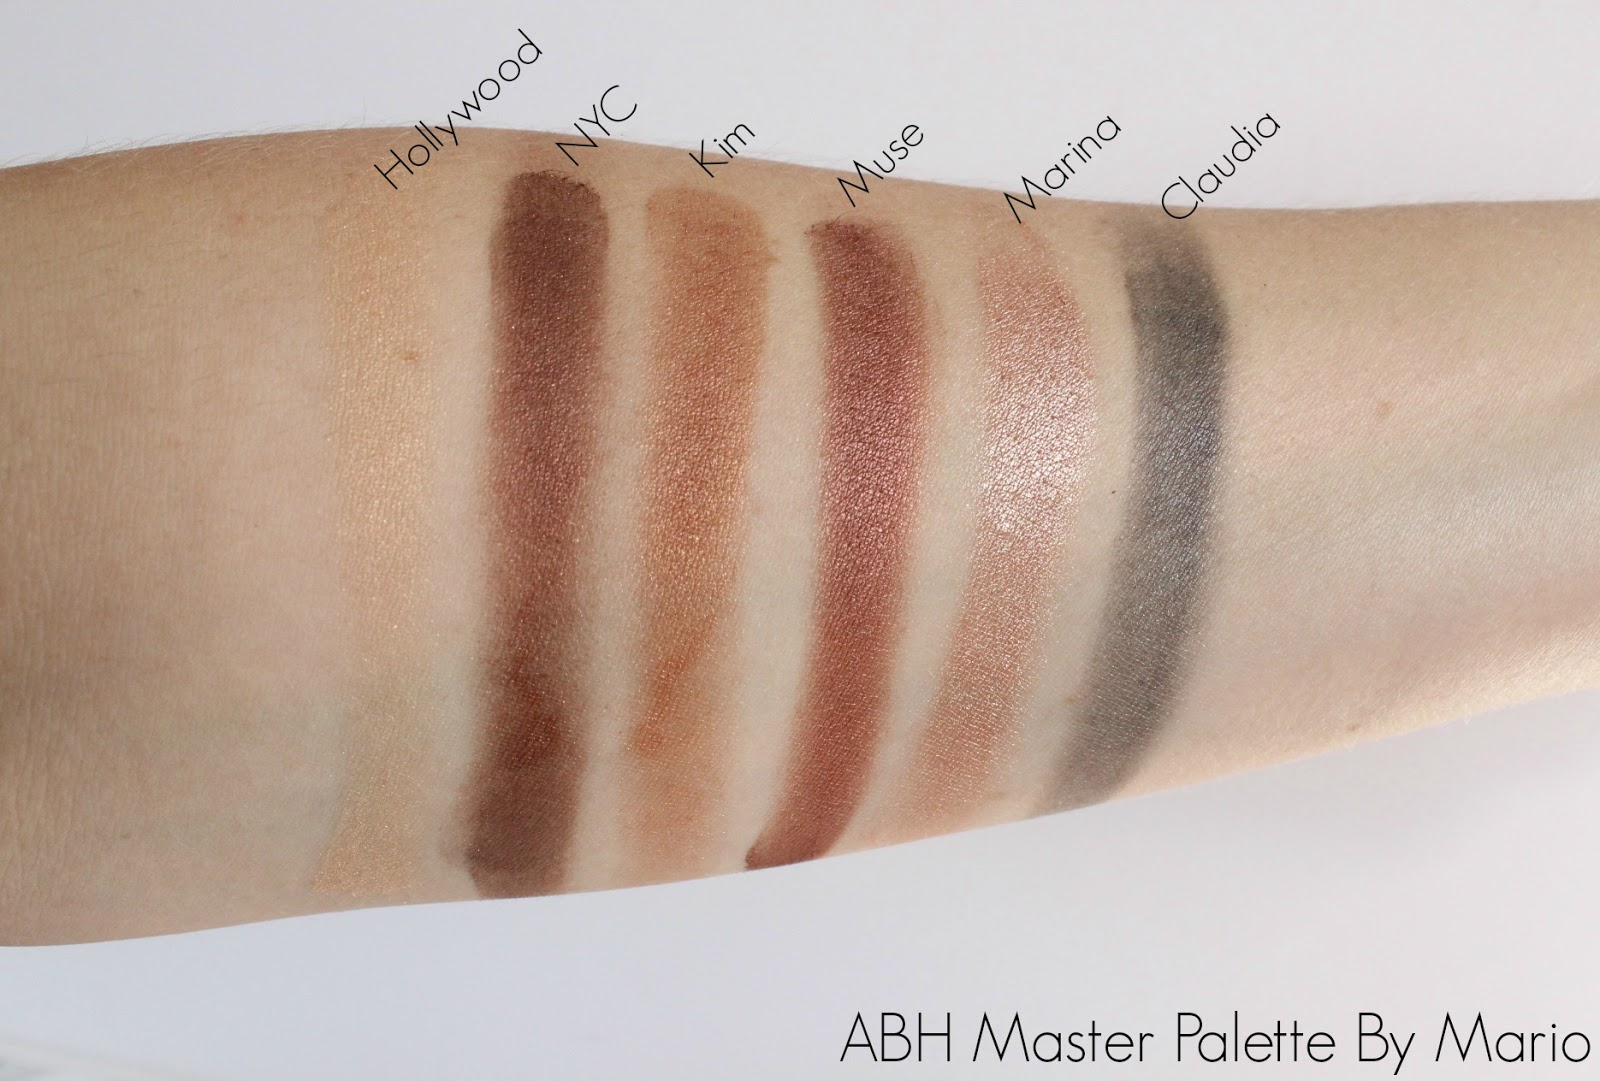 Anastasia Beverly Hills Master Palette By Mario Swatches